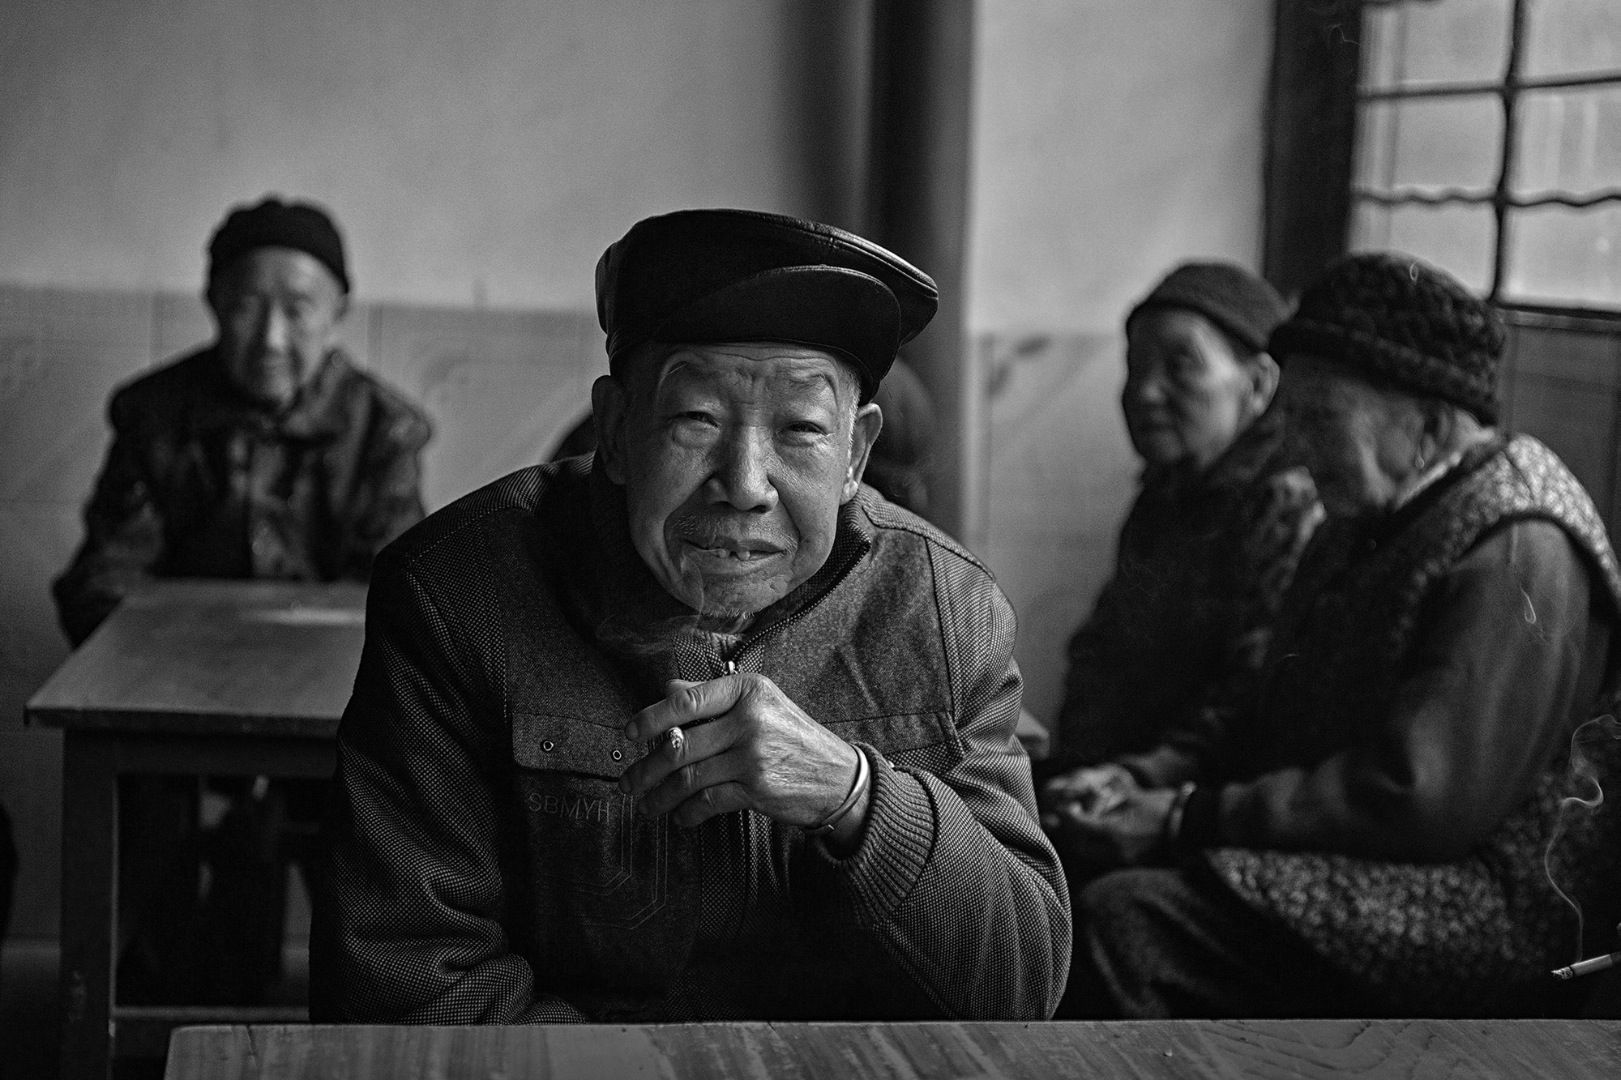 The Forgotten Faces of Contemporary China